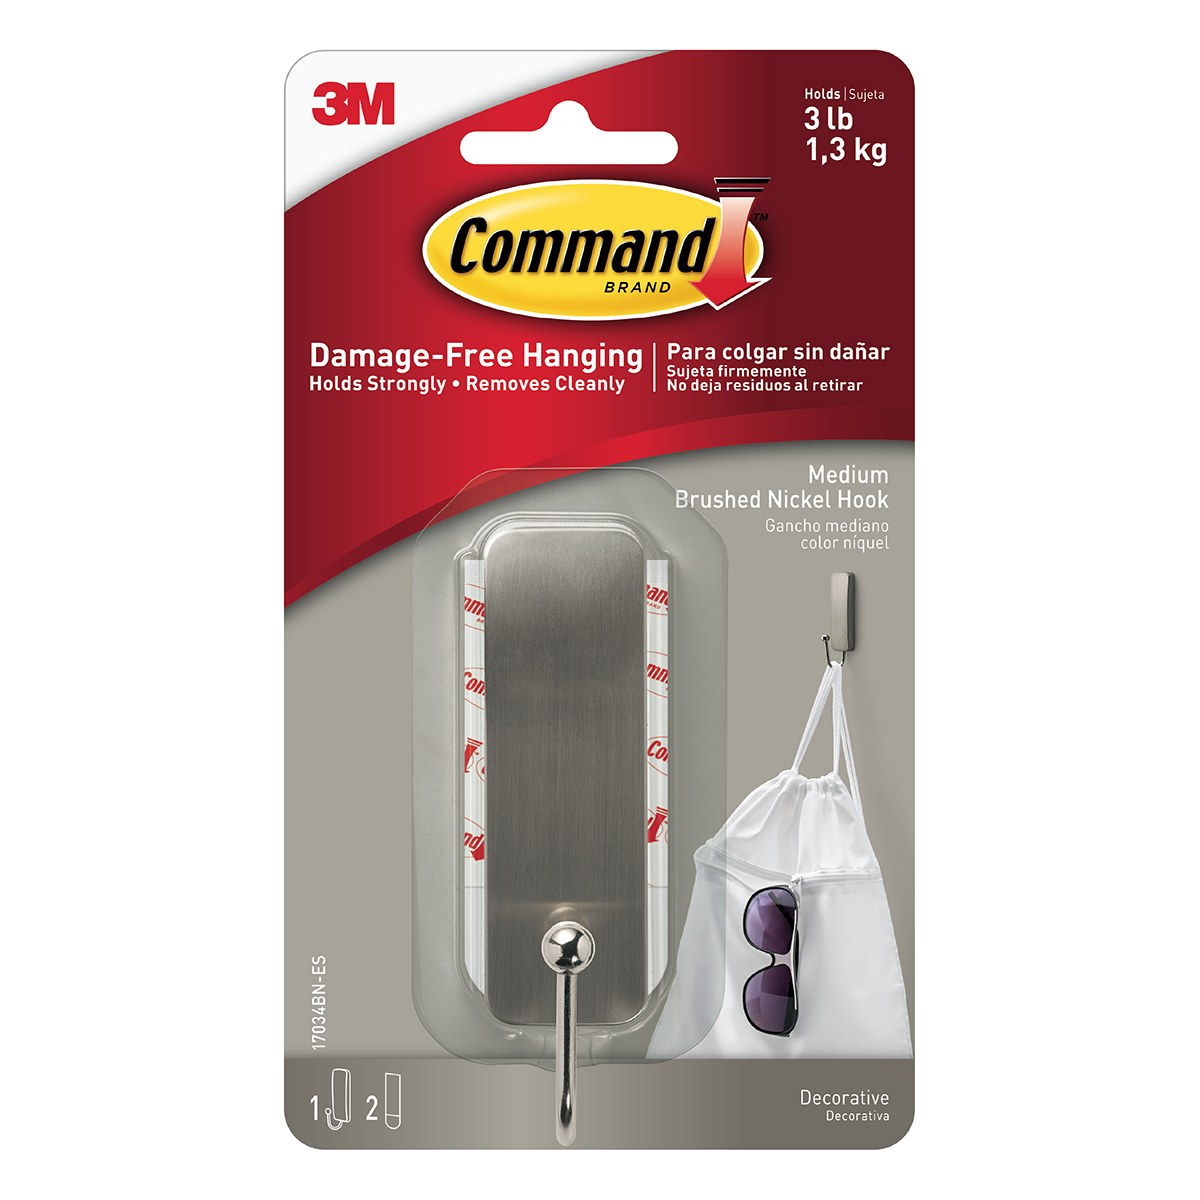 3M Command Adhesive Medium Brushed Nickel Hook